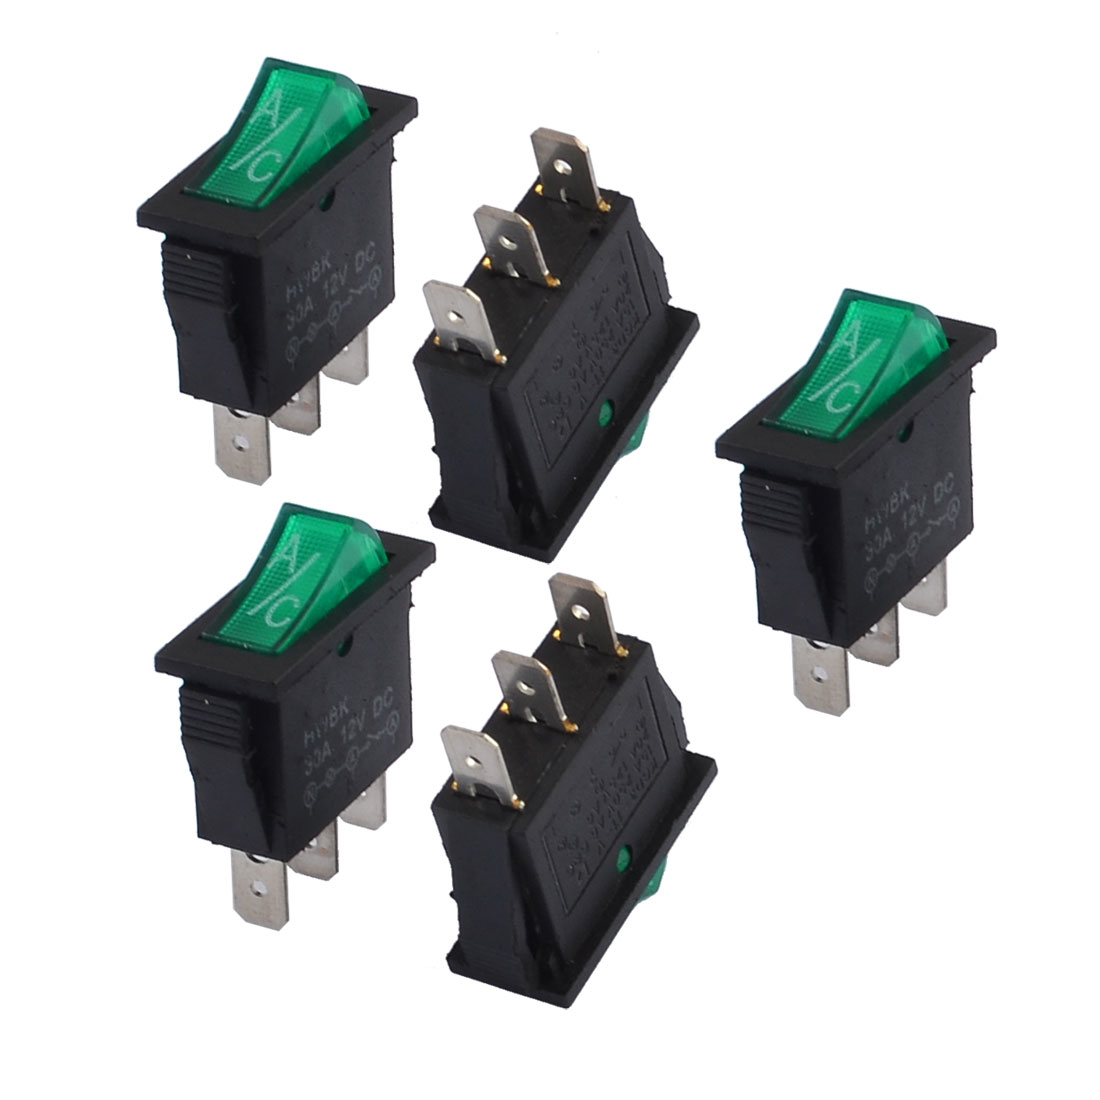 5 Pcs 15A/250V 20A/125V Green Light Illuminated 3 Pin SPST ON/OFF Boat Rocker Switch